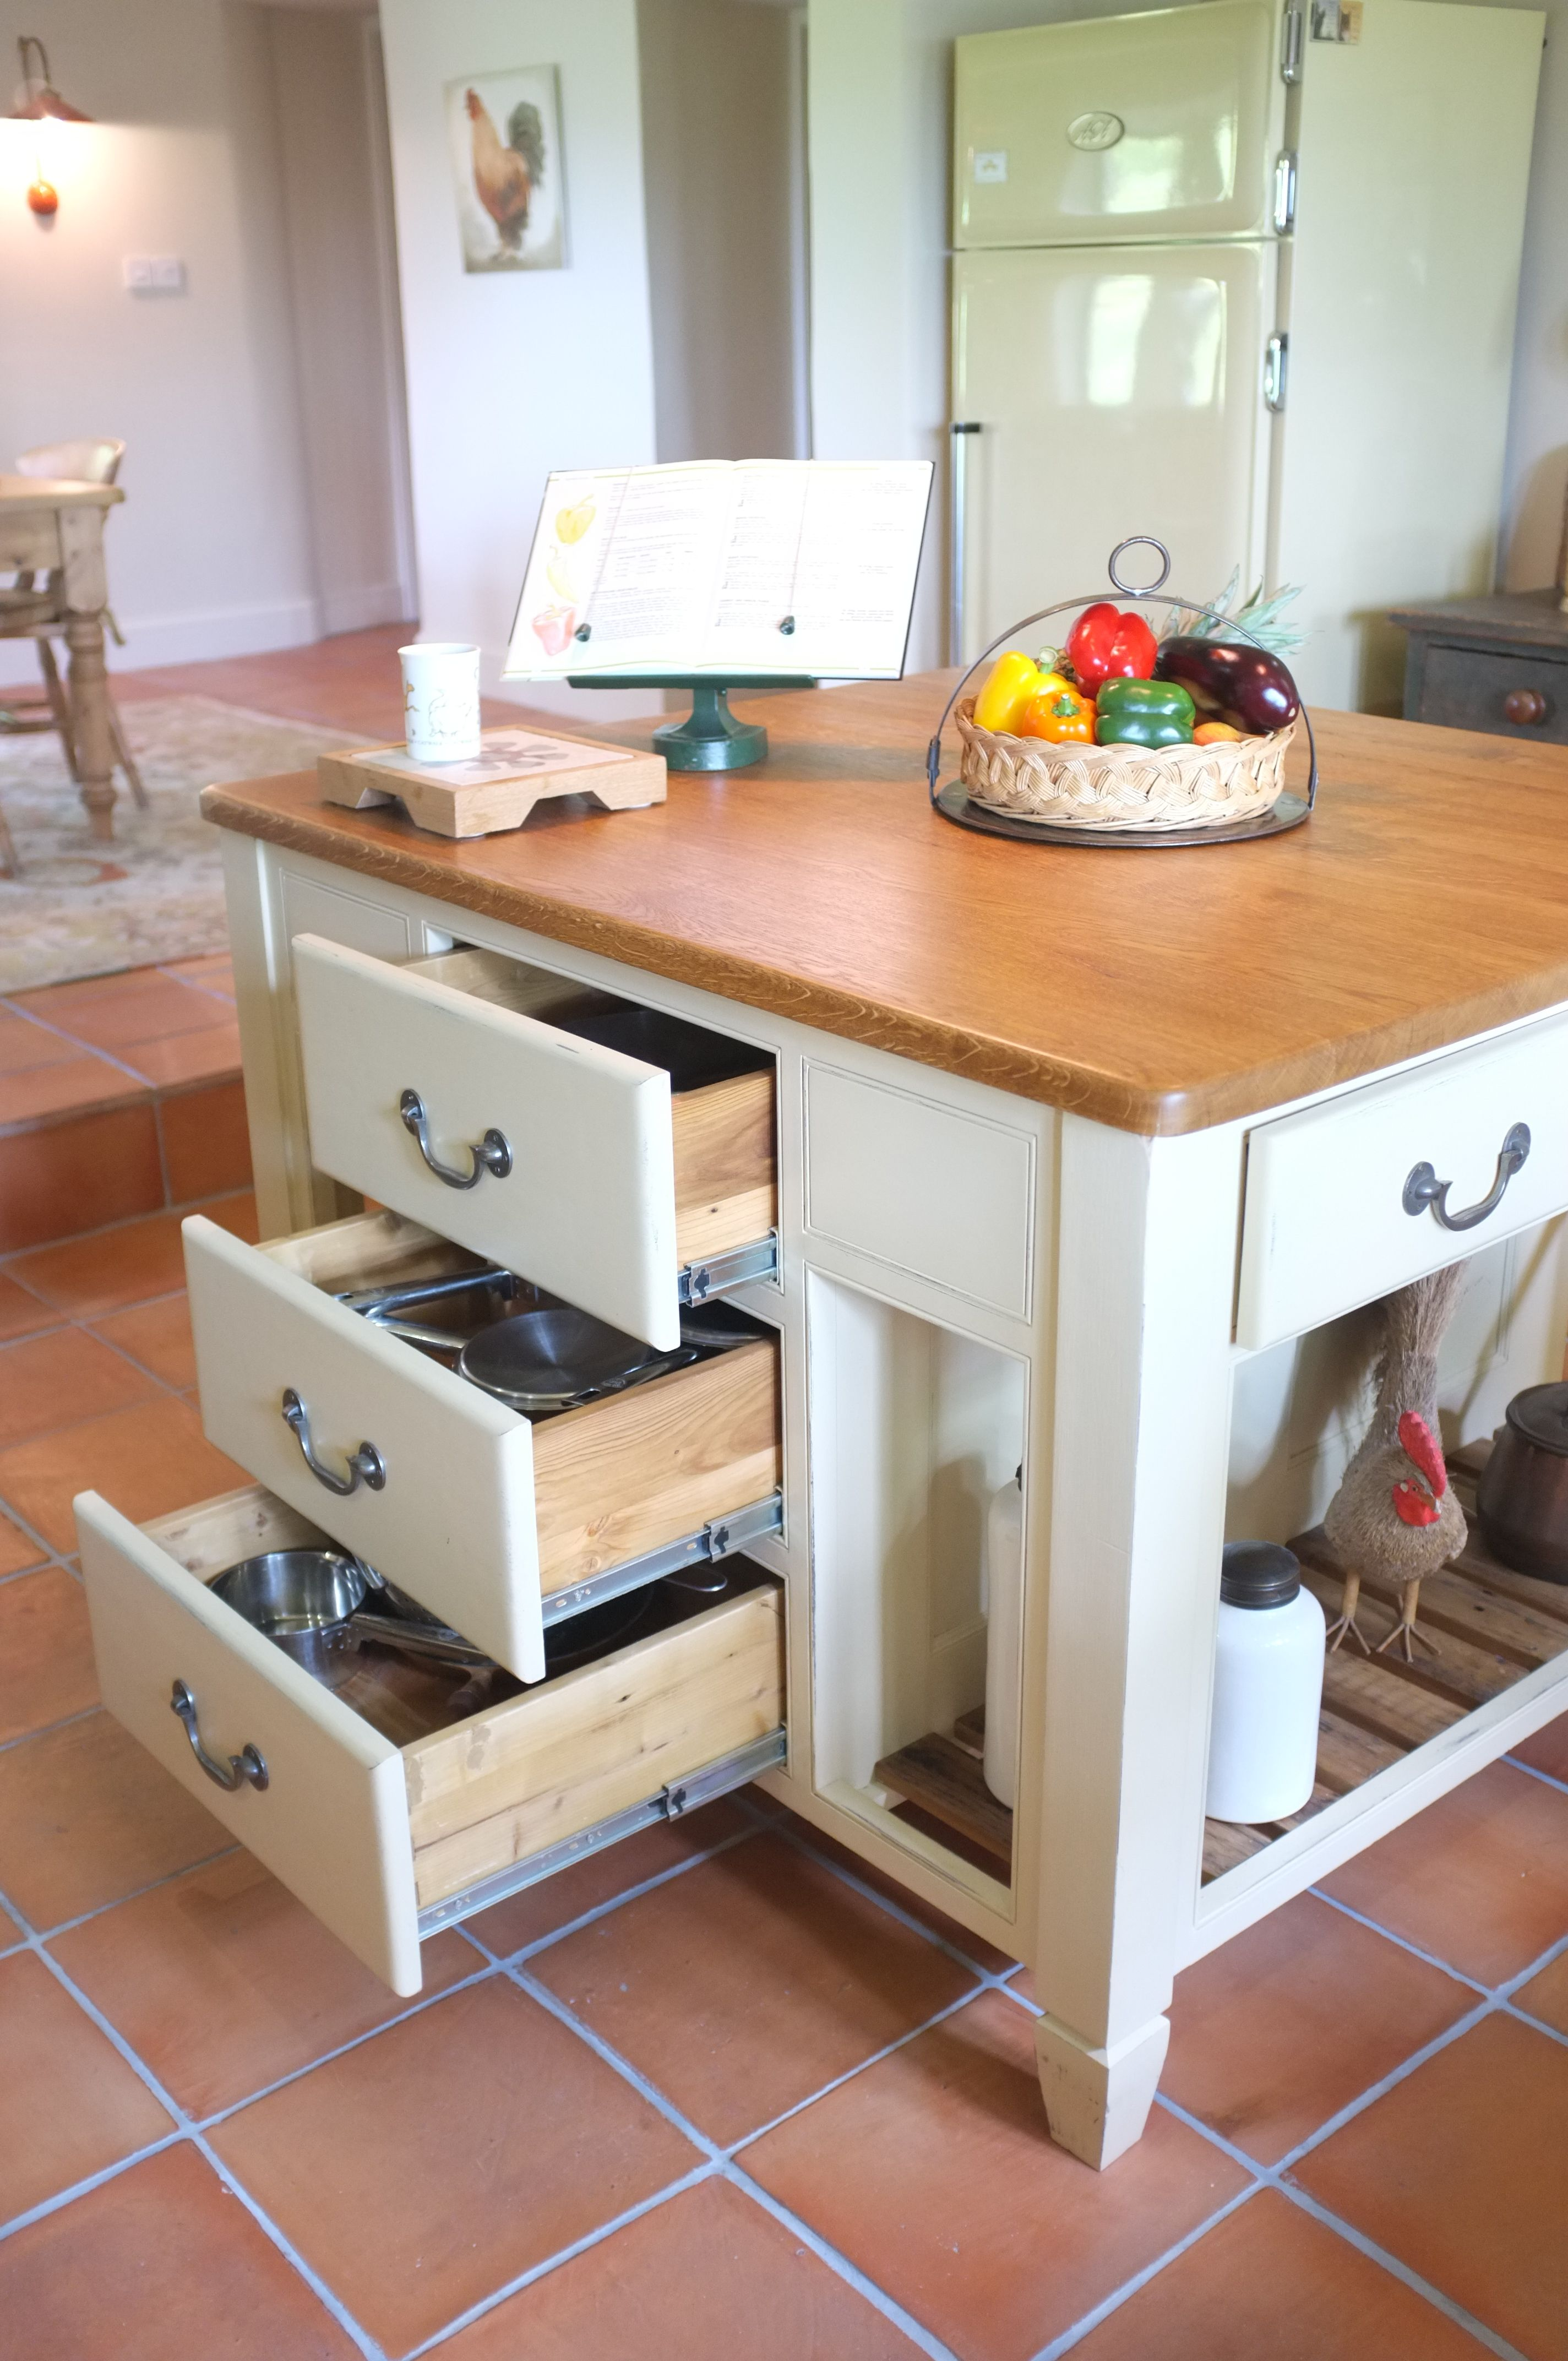 Kitchen Furniture Company: Bespoke South Yorkshire Kitchen, Handmade By The Main